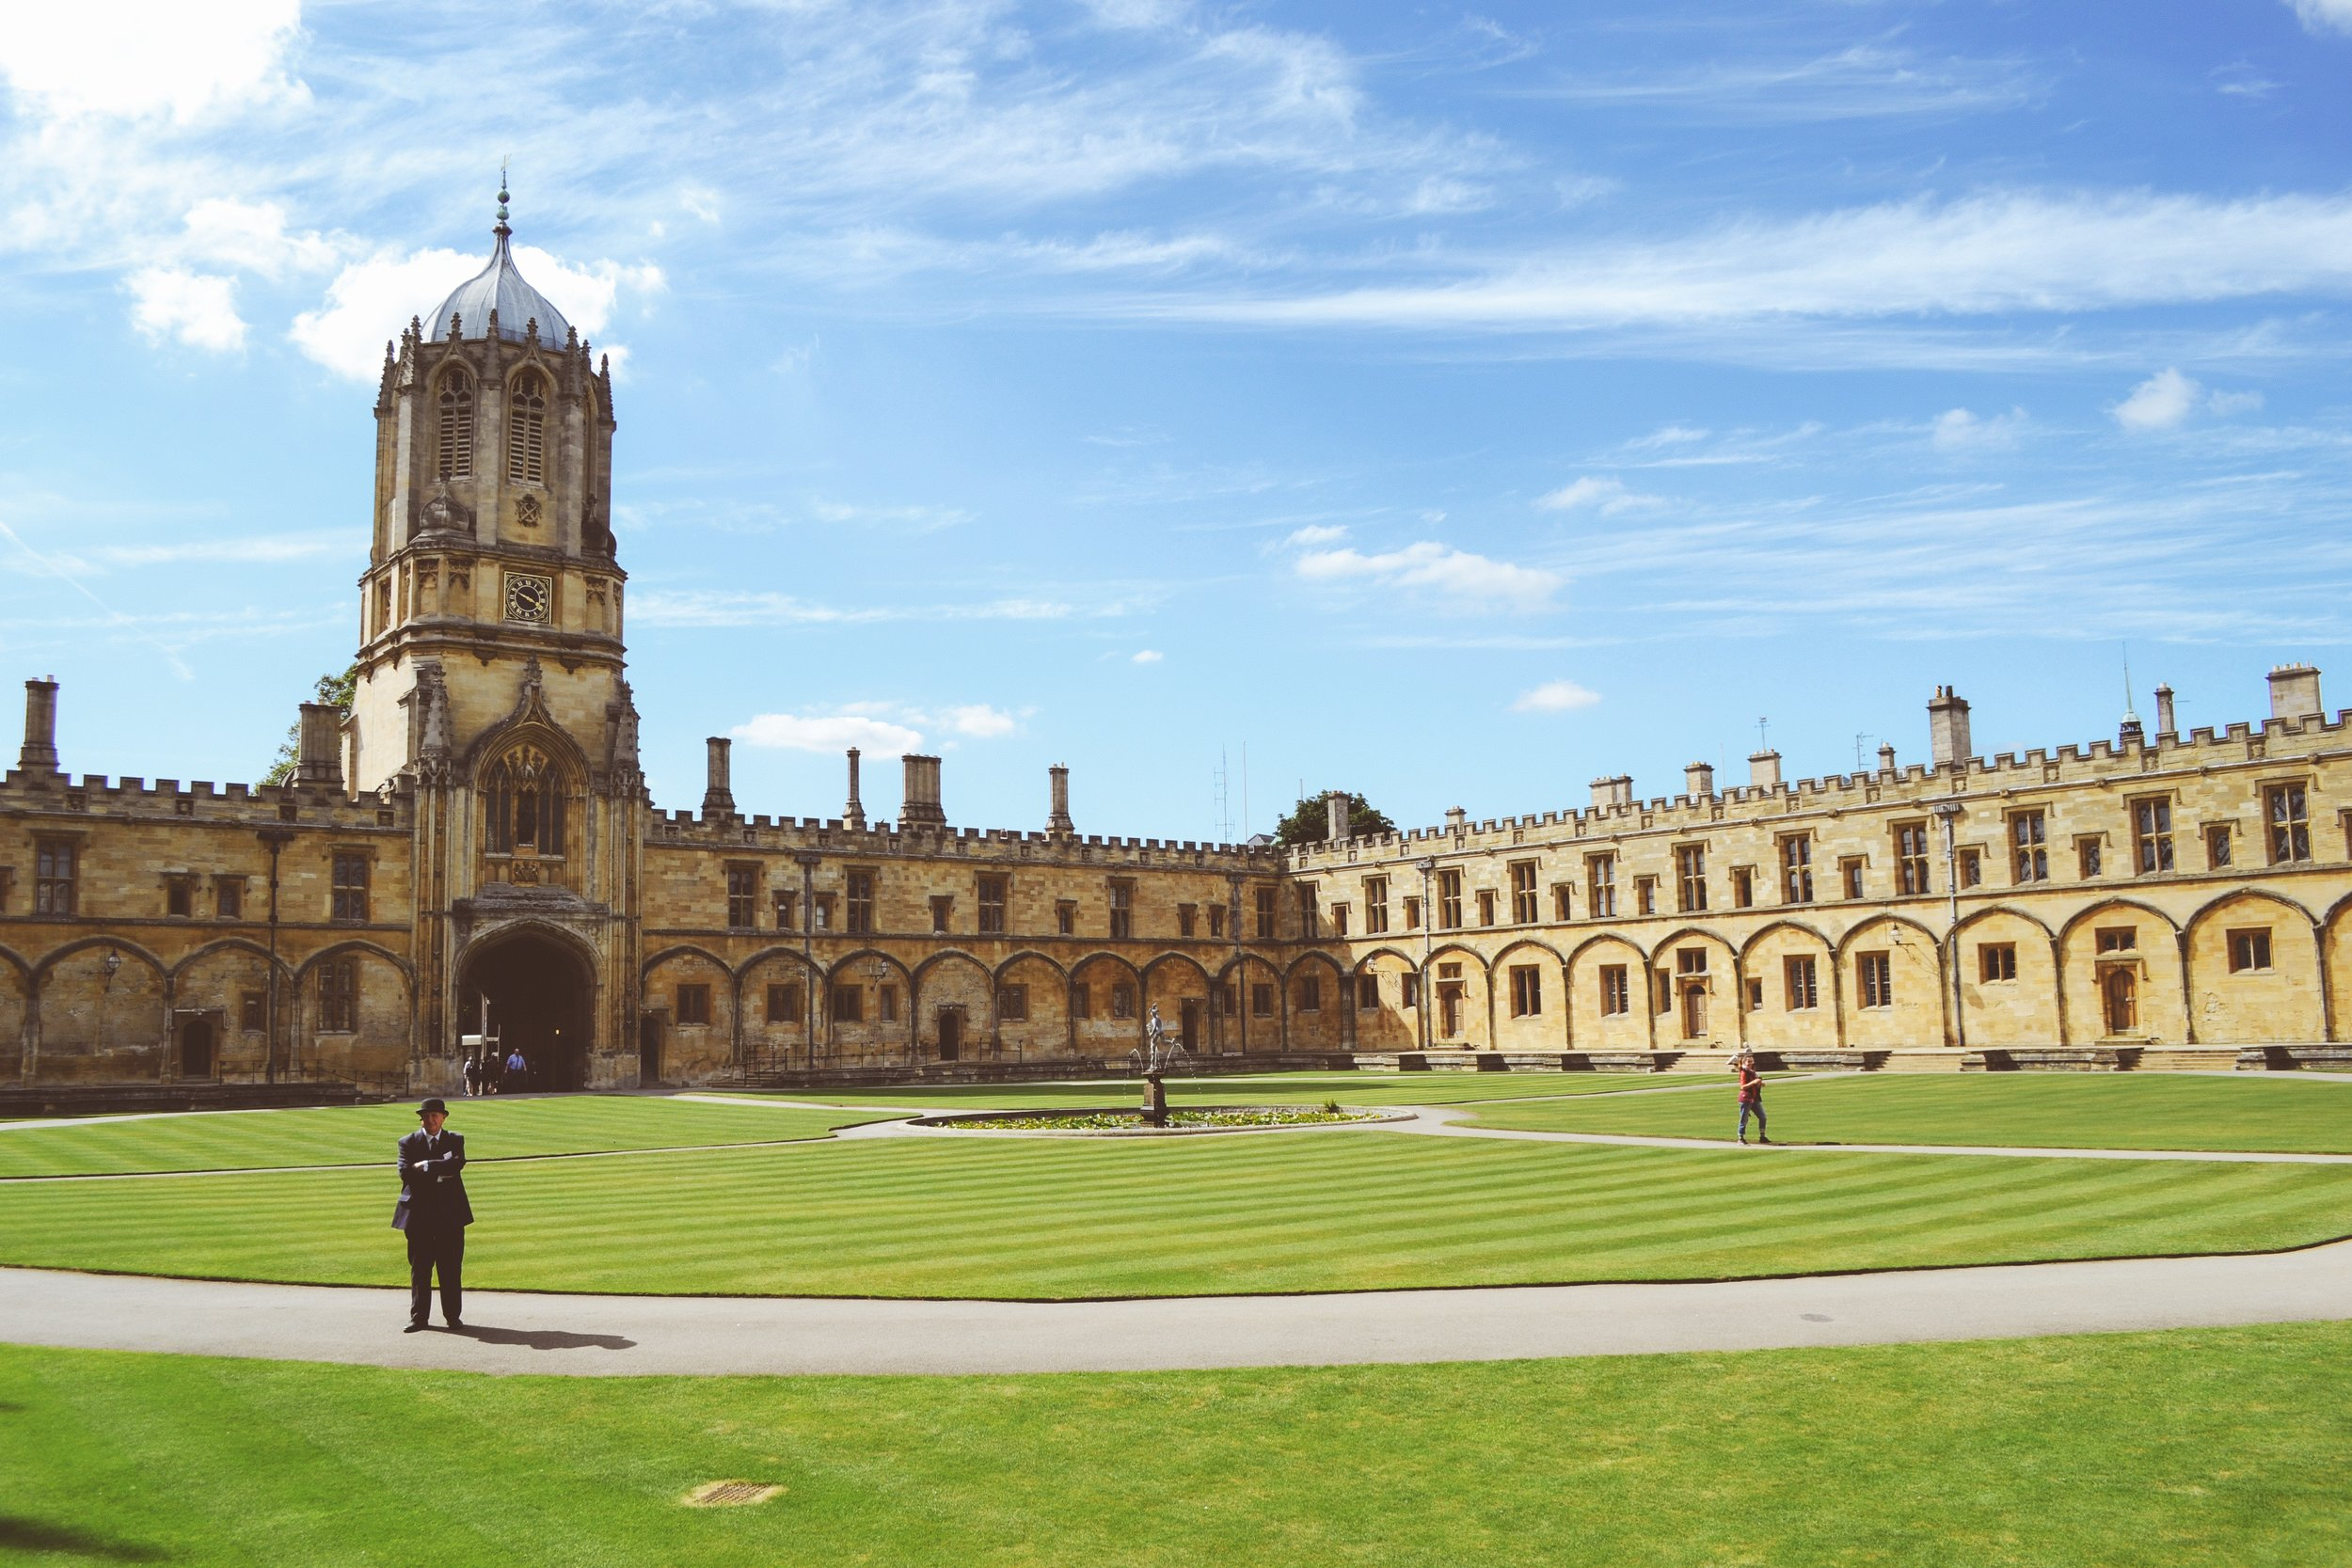 The University of Oxford embodies a vision of separation between academic and non-academic life.